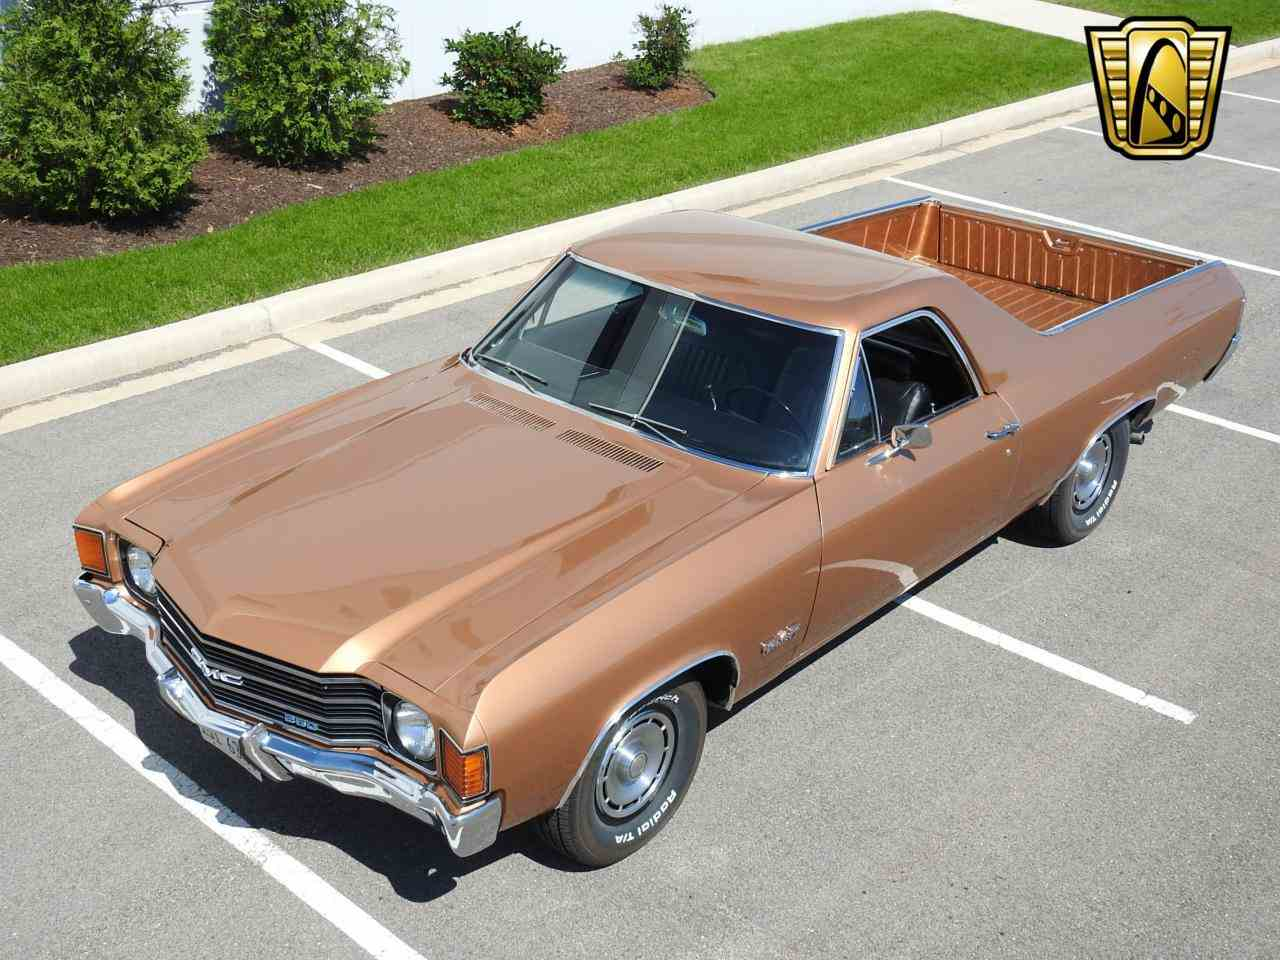 Large Picture of 1972 GMC Sprint located in Wisconsin - $29,995.00 - L8EJ